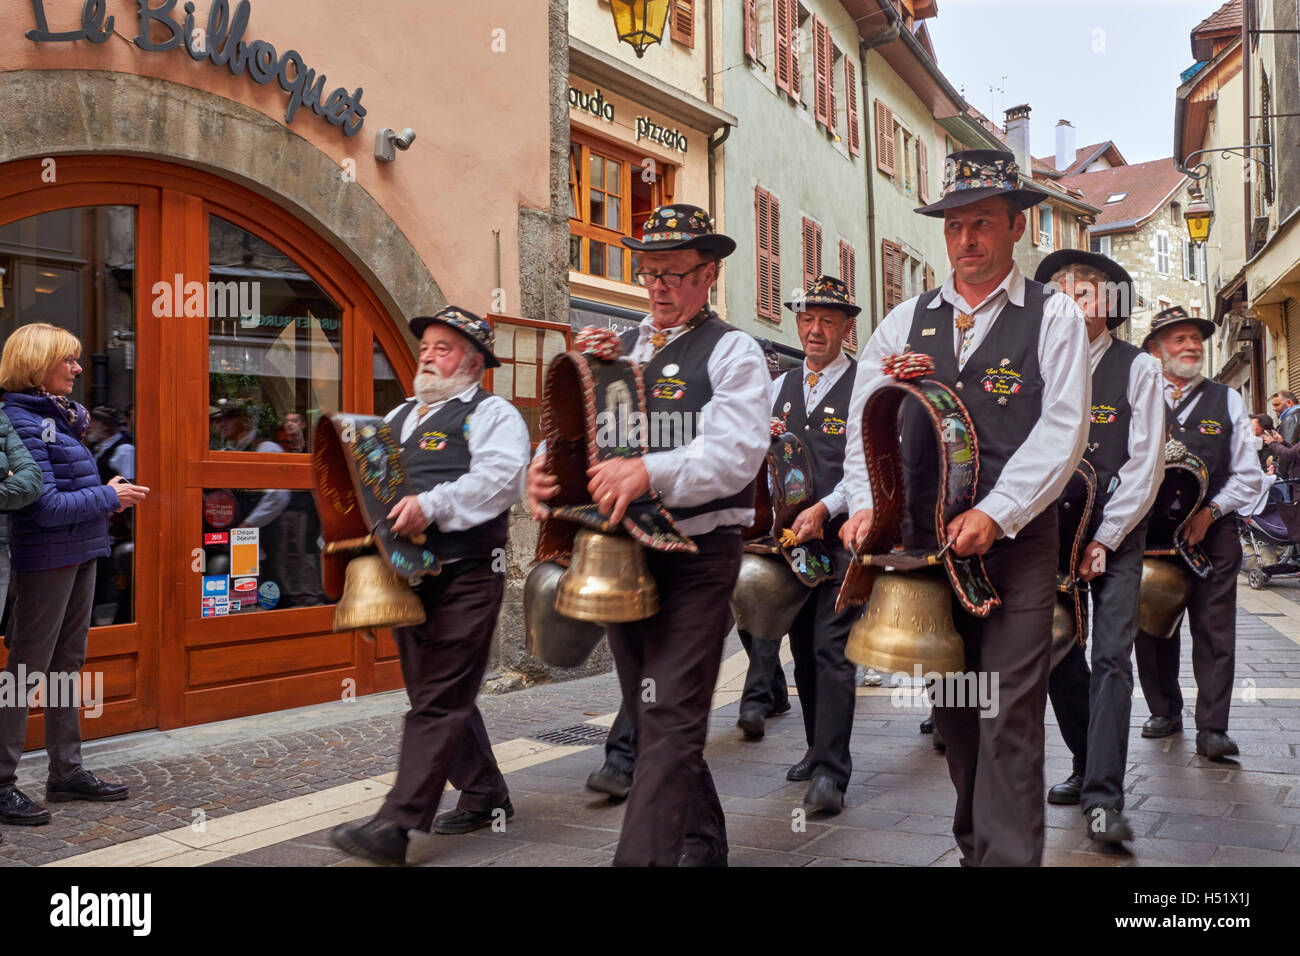 Group of men ringing cow bells during the Retour des Alpages festival. Annecy, Haute-Savoie, France. - Stock Image